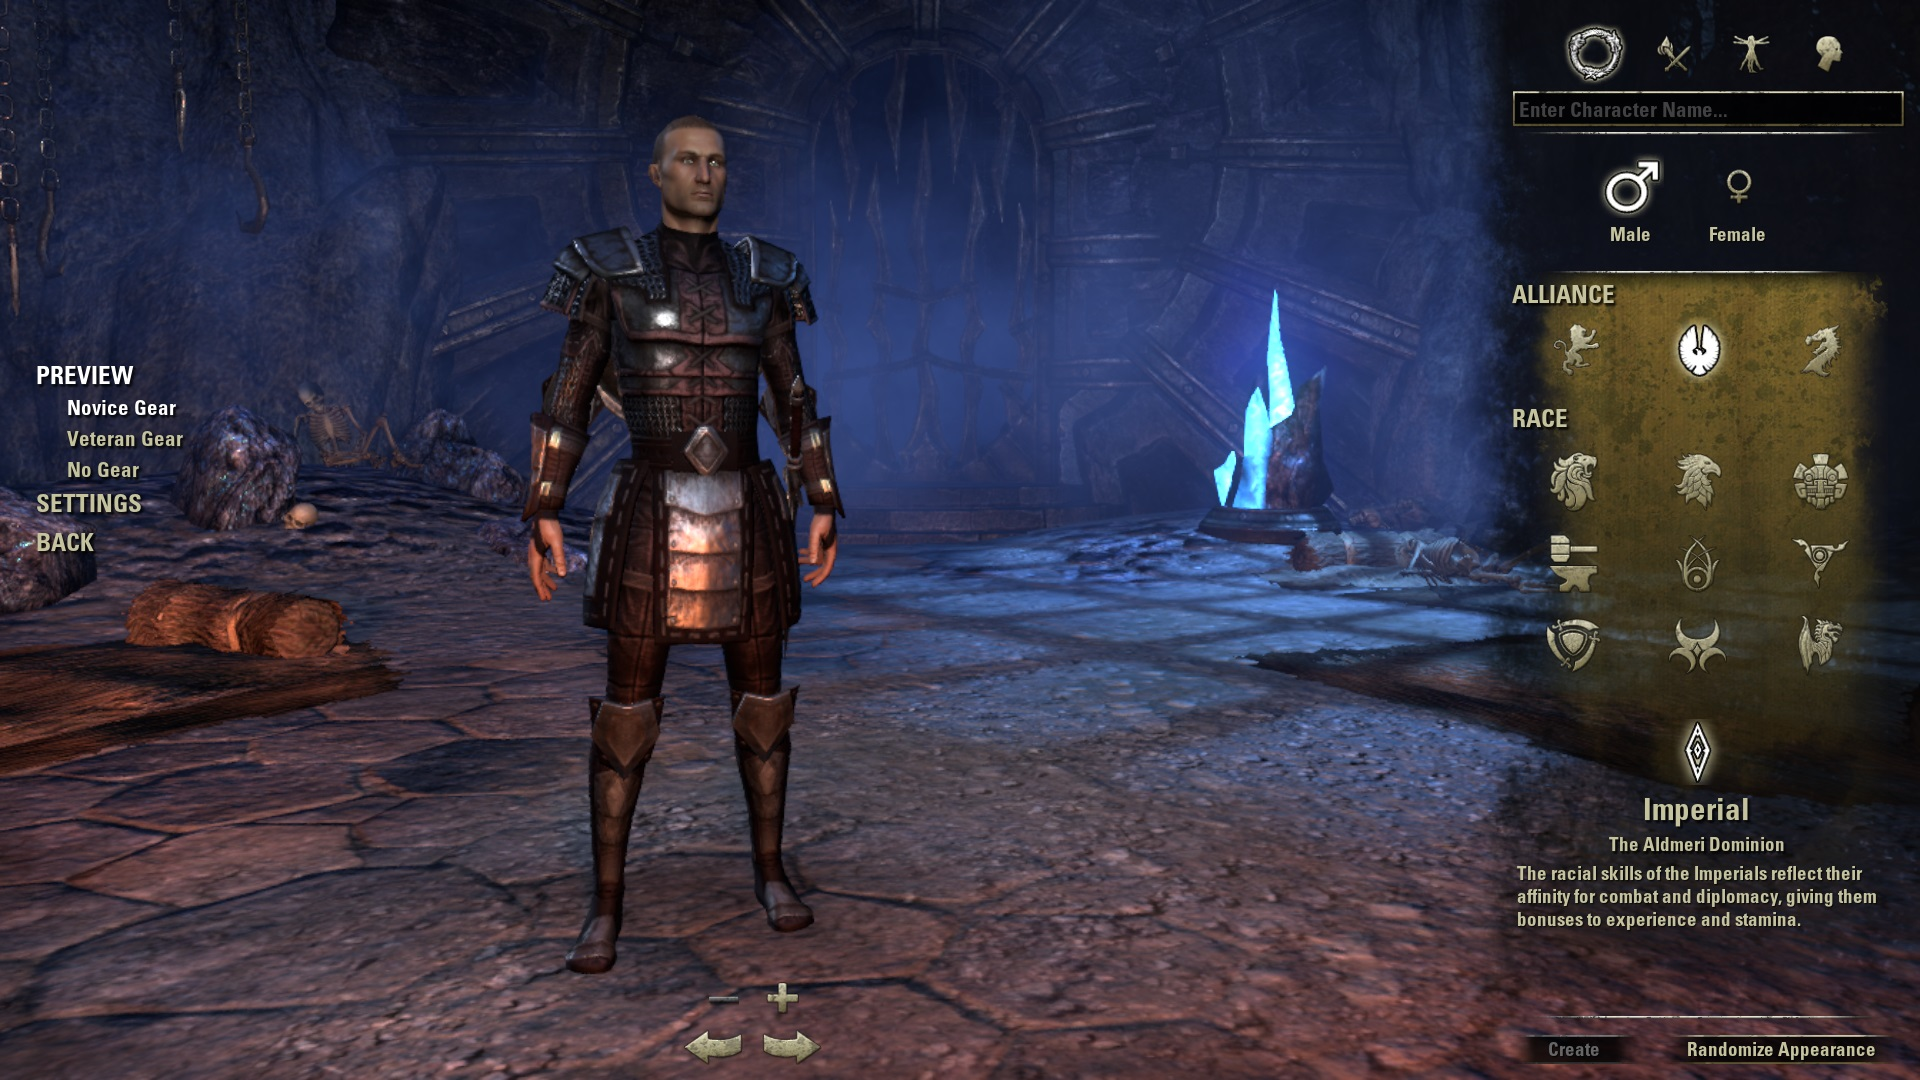 elder scrolls online guide to races